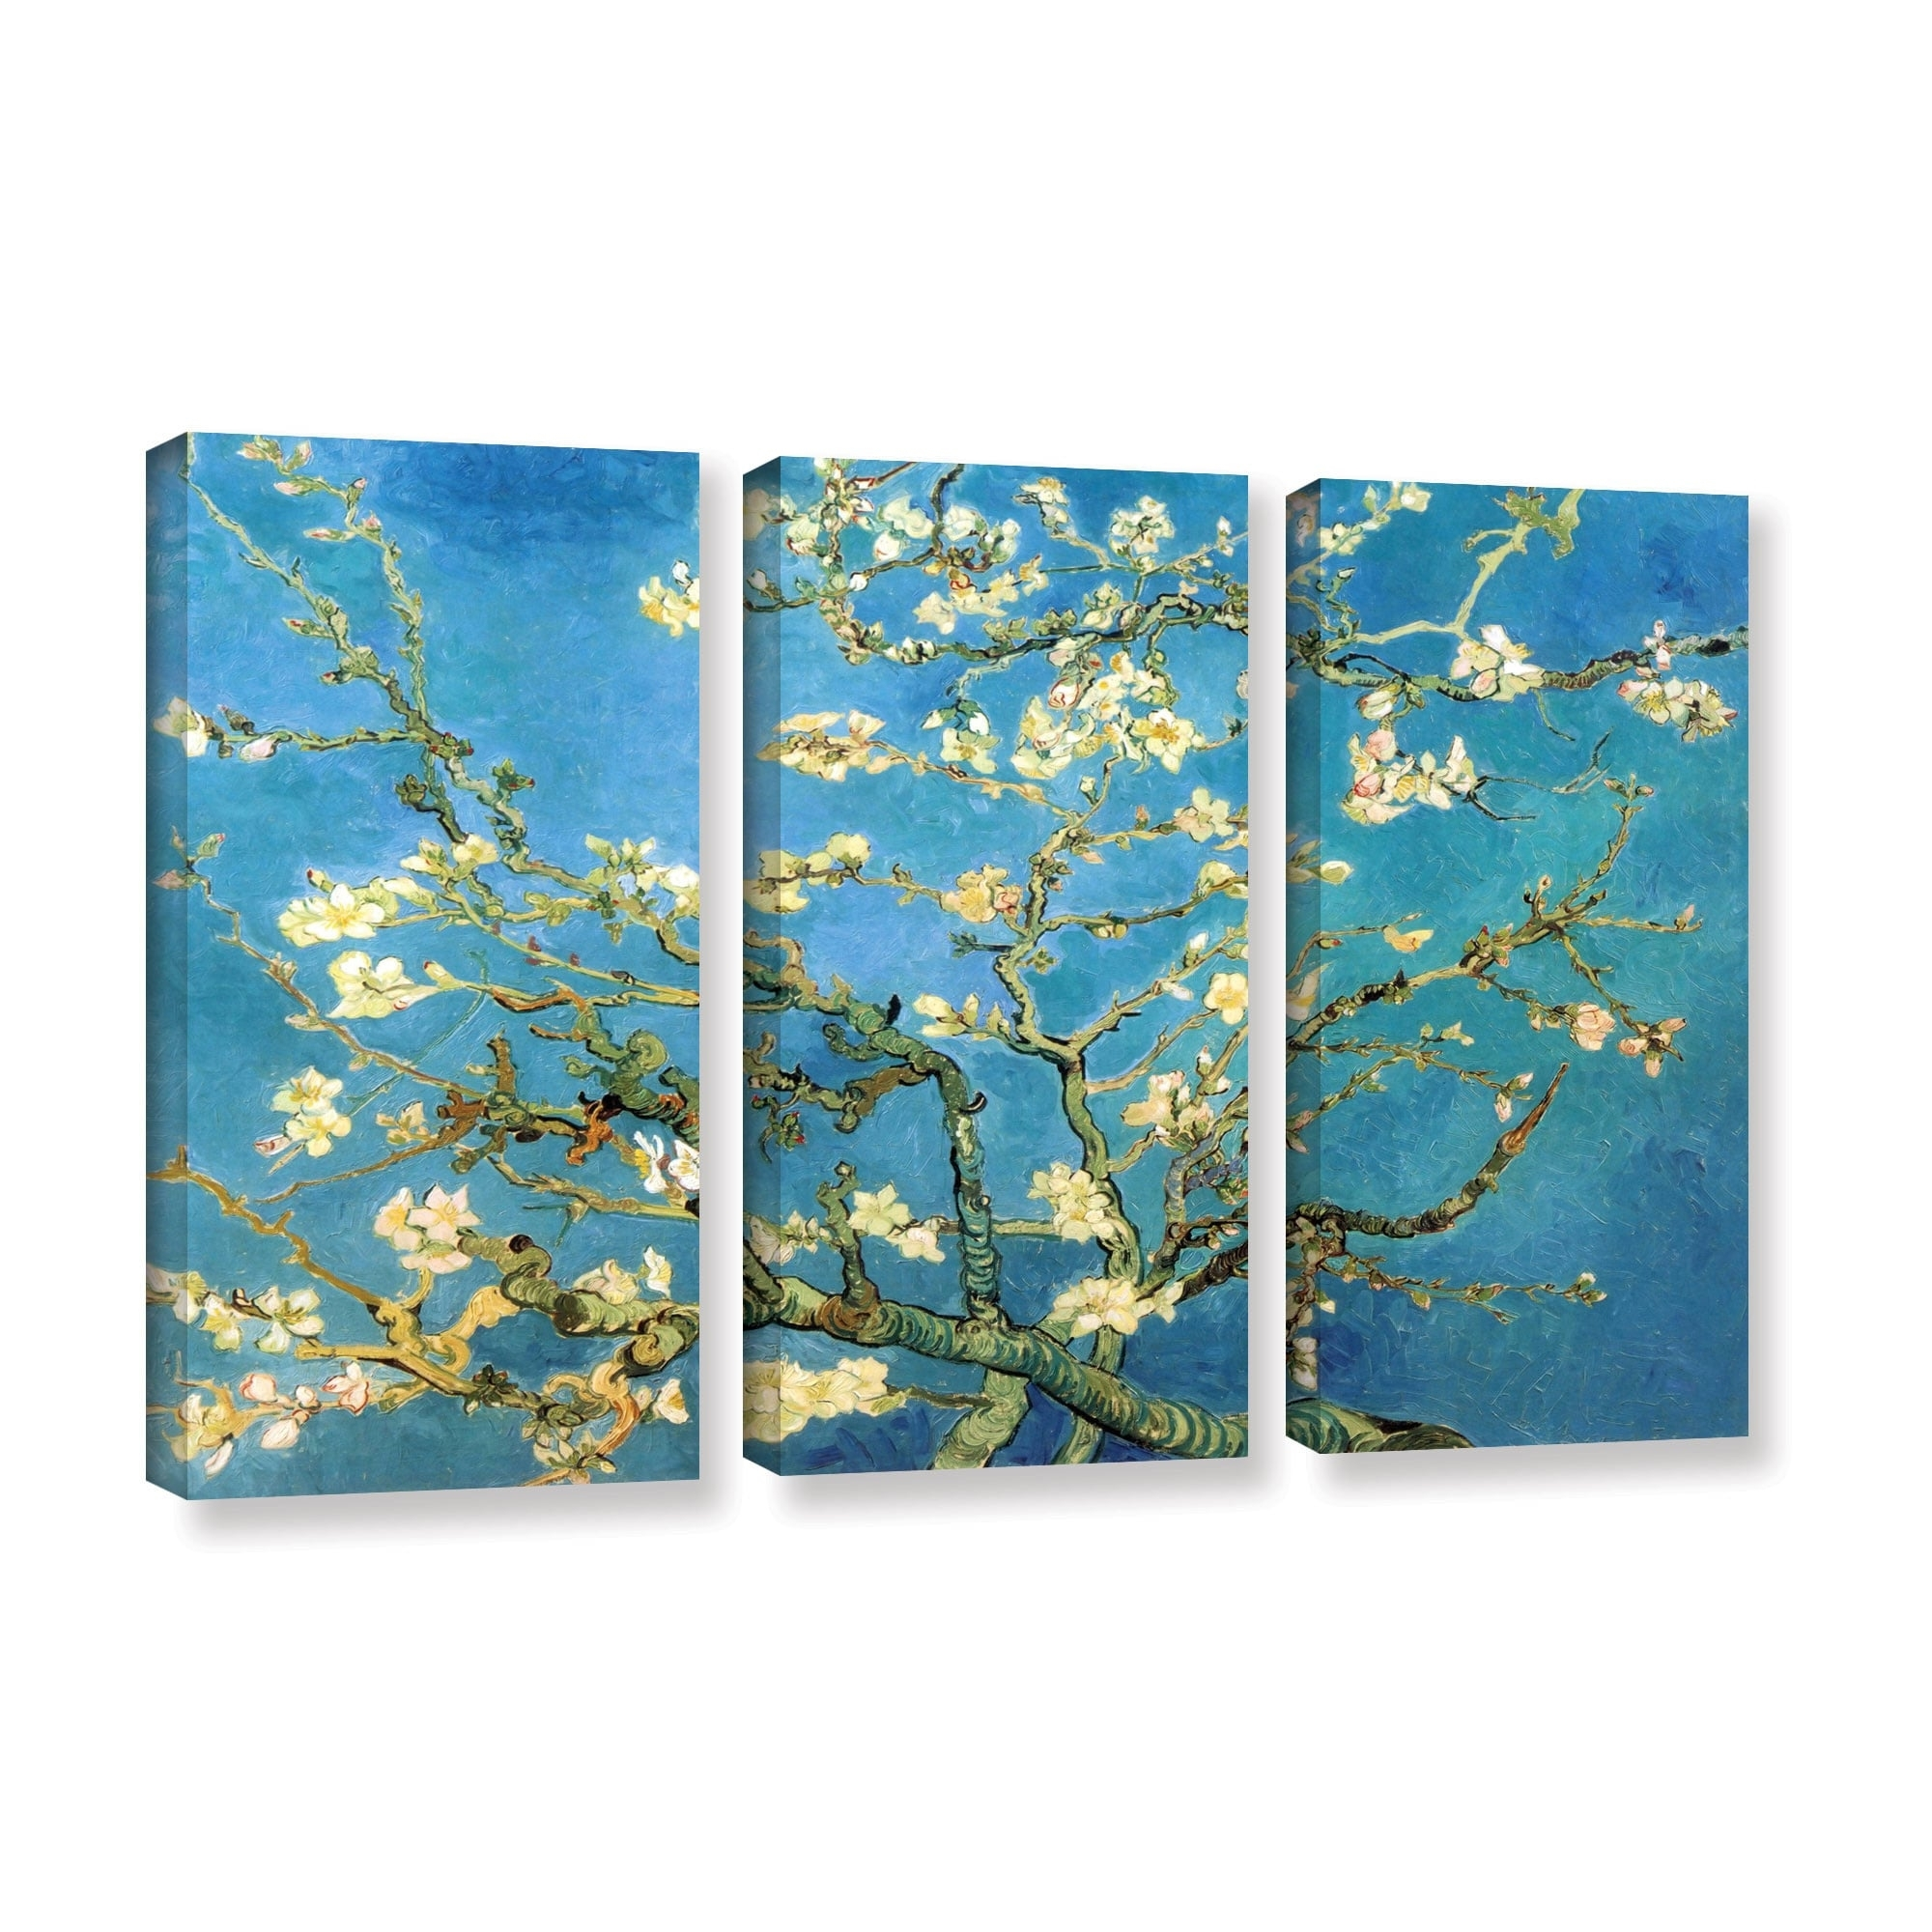 Vincent Van Gogh '3 Piece Almond Blossom' Gallery Wrapped Canvas For 2017 Vincent Van Gogh Multi Piece Wall Art (View 17 of 20)